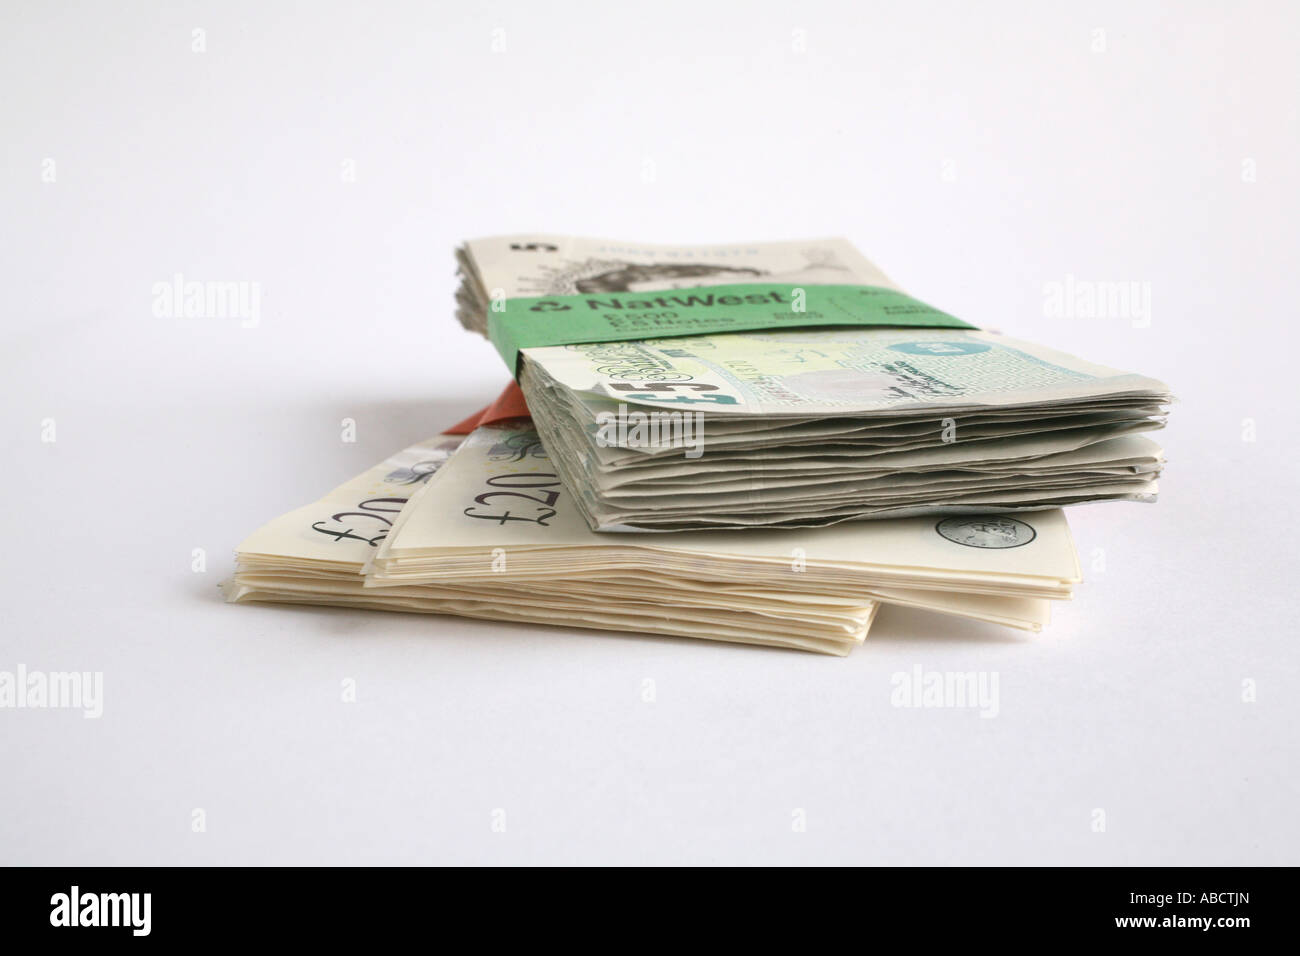 Bundles of twenty and five pound notes - Stock Image